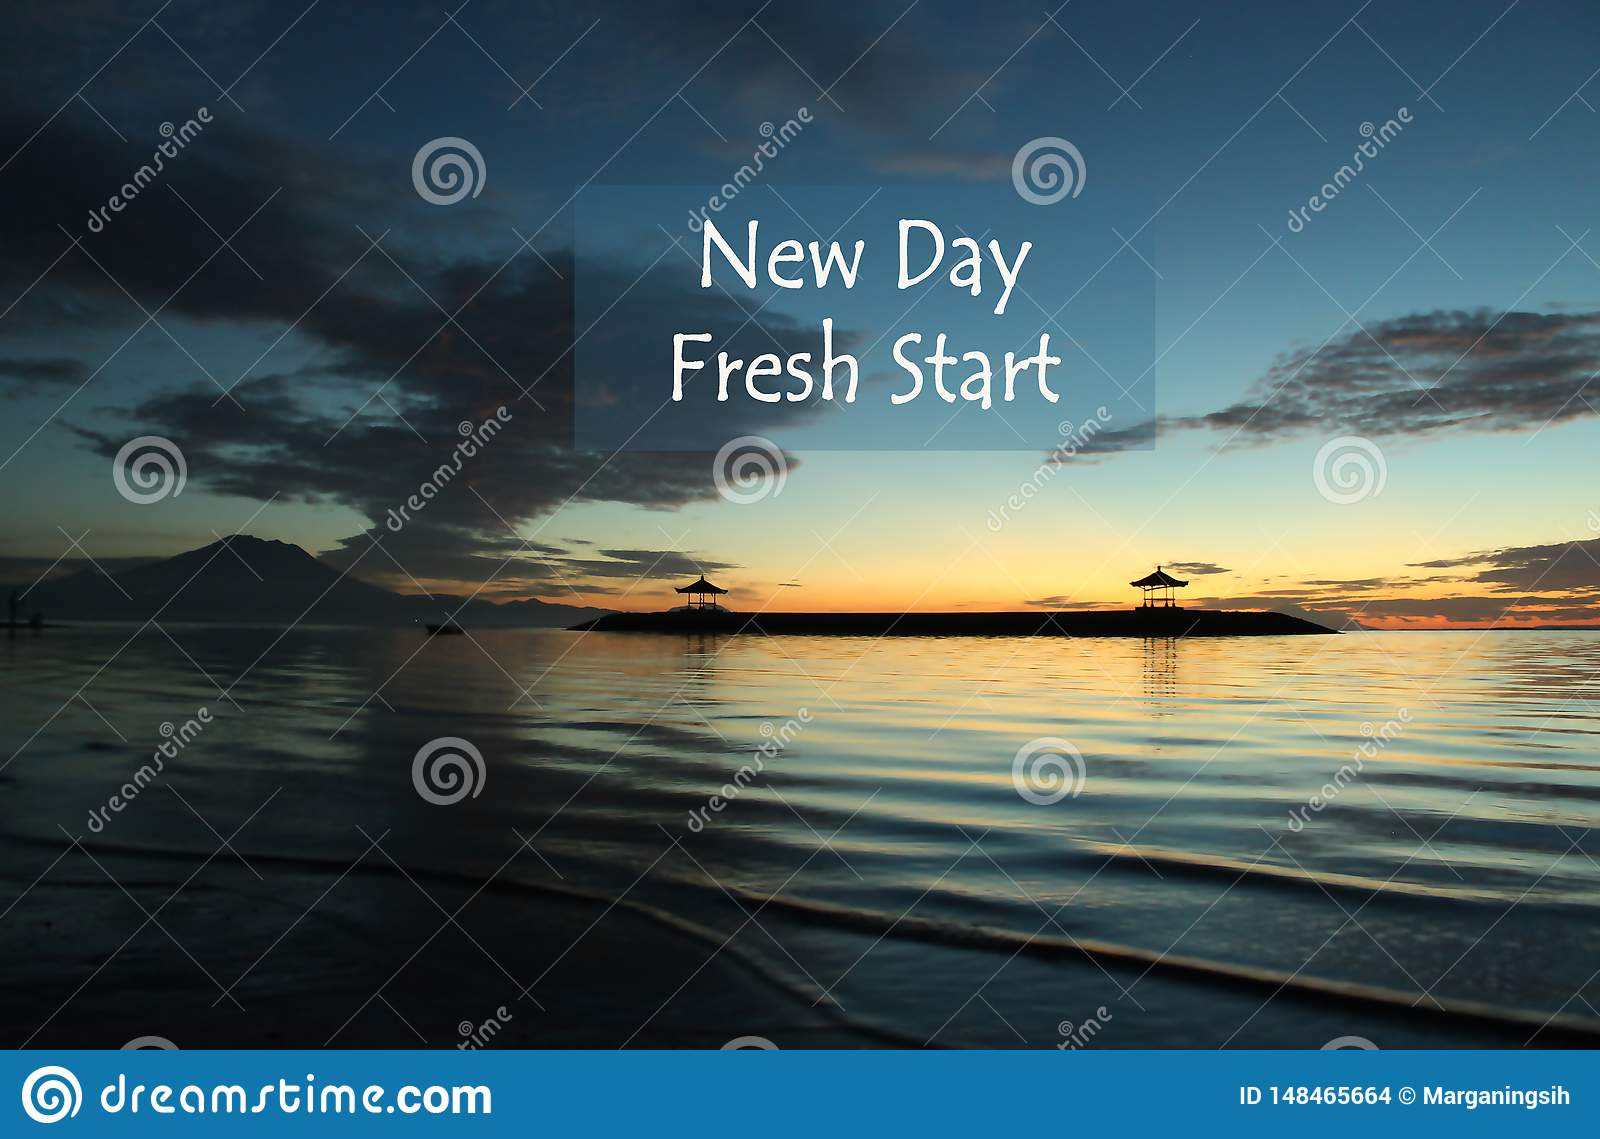 New Day Quote with blurry blue landscape background.